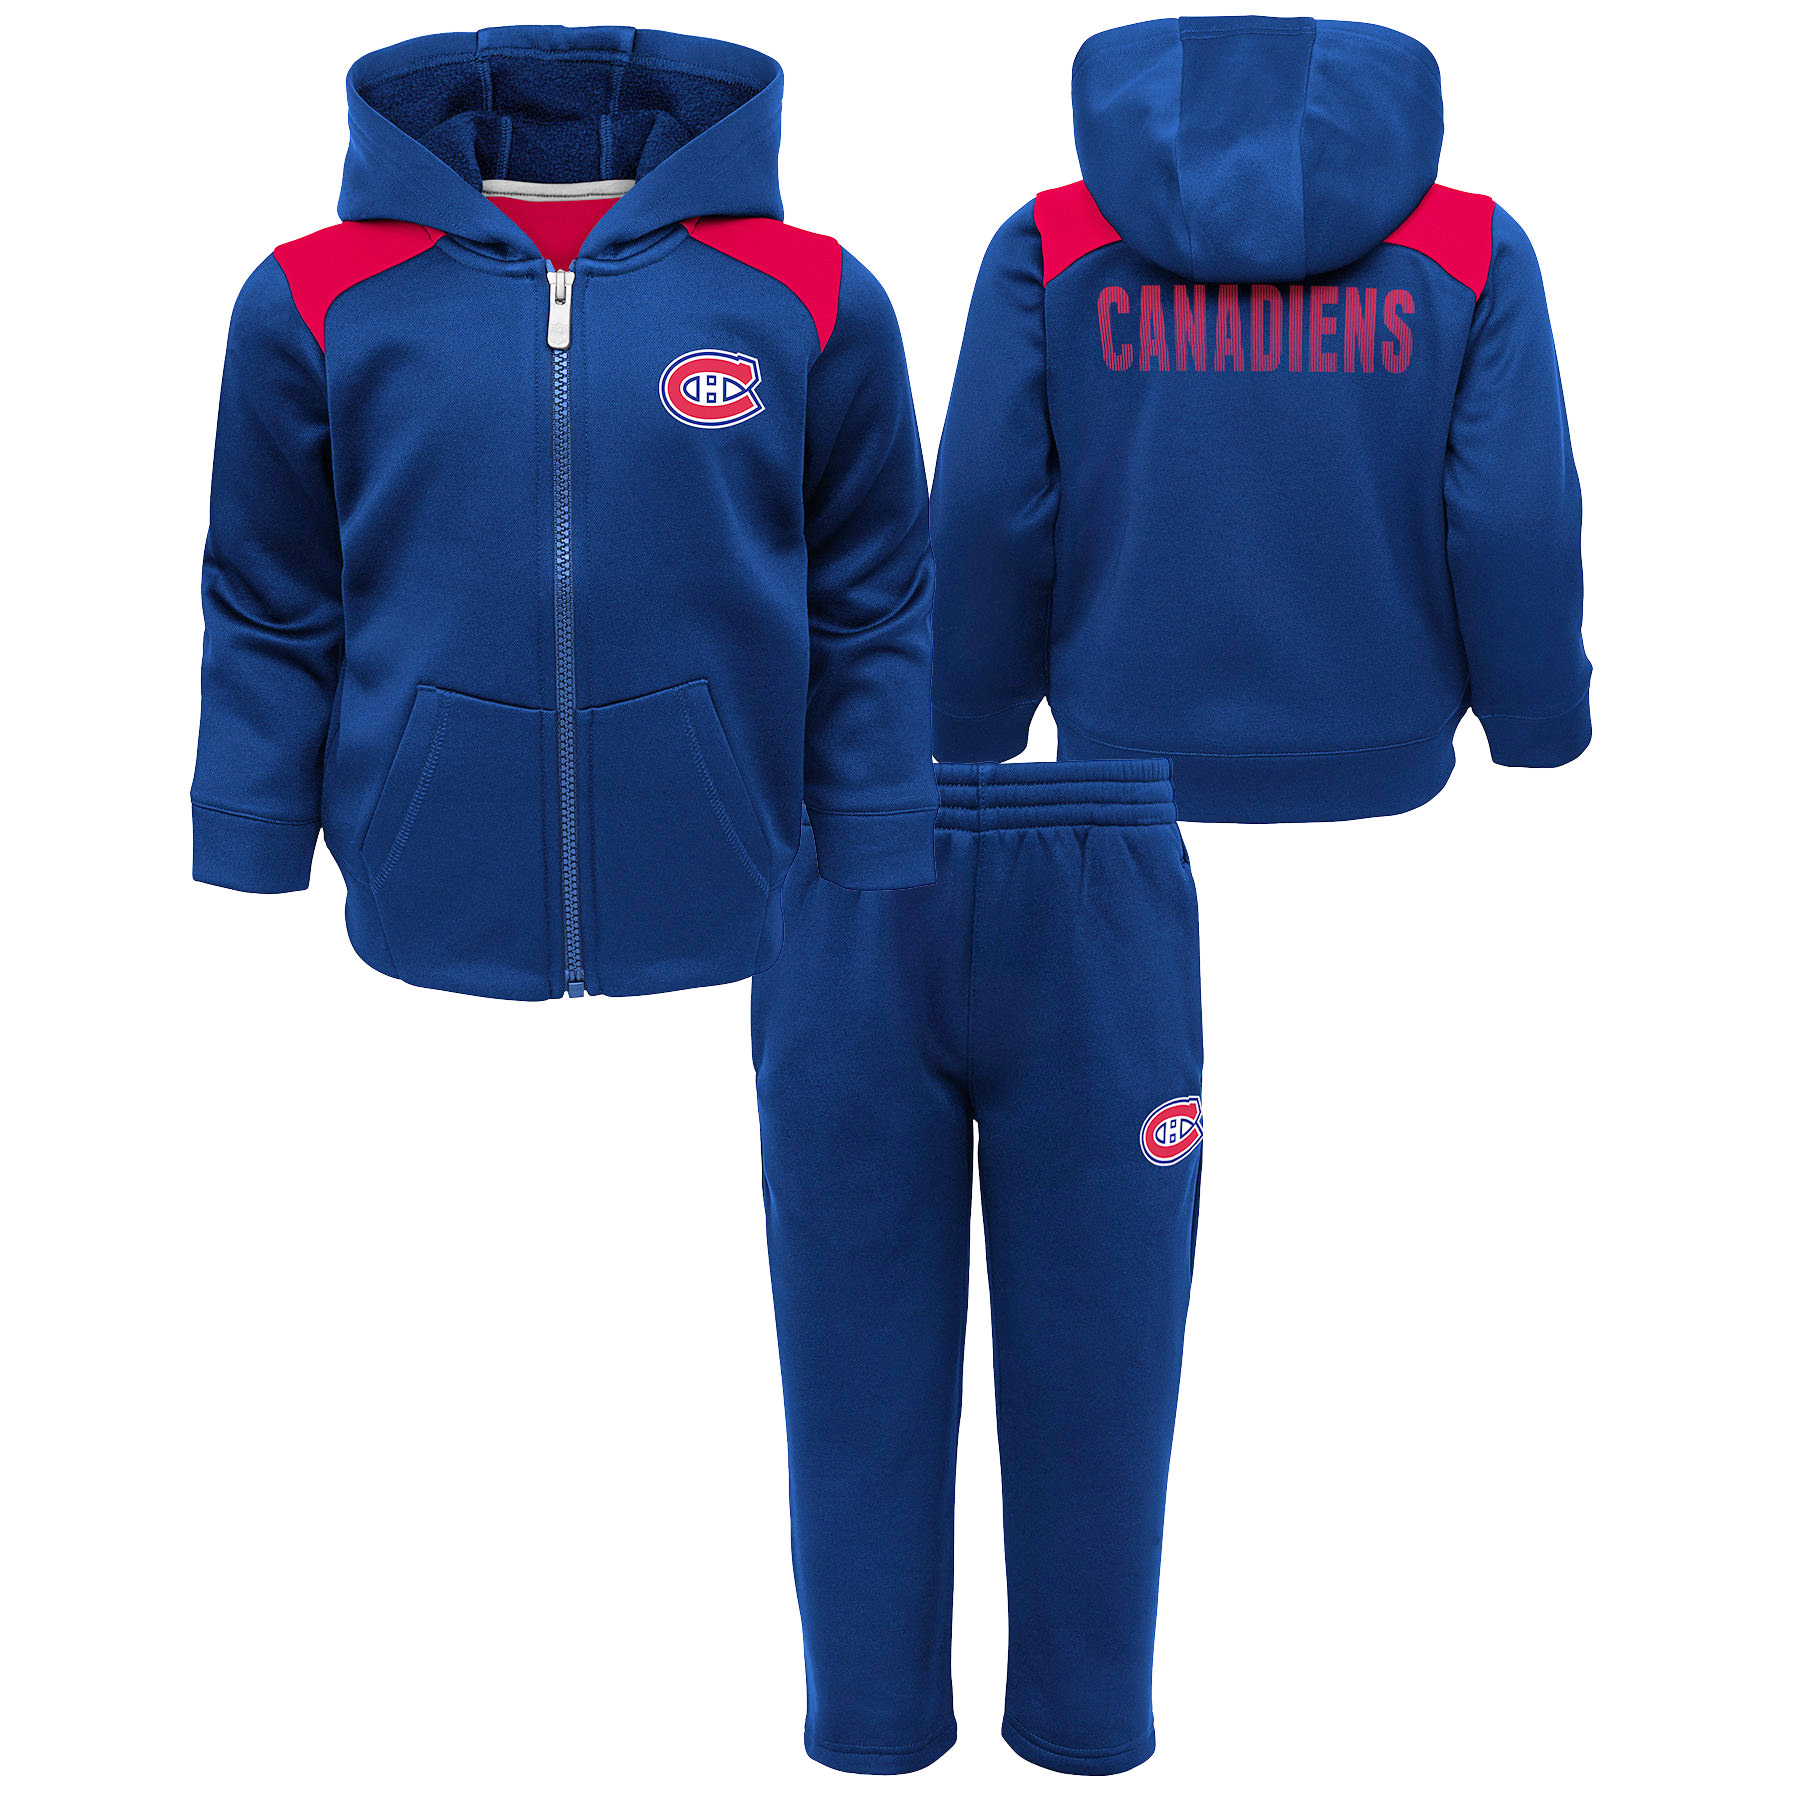 Outerstuff Youth Montreal Canadiens NHL Catcher Performance Fleece Set - image 2 of 2